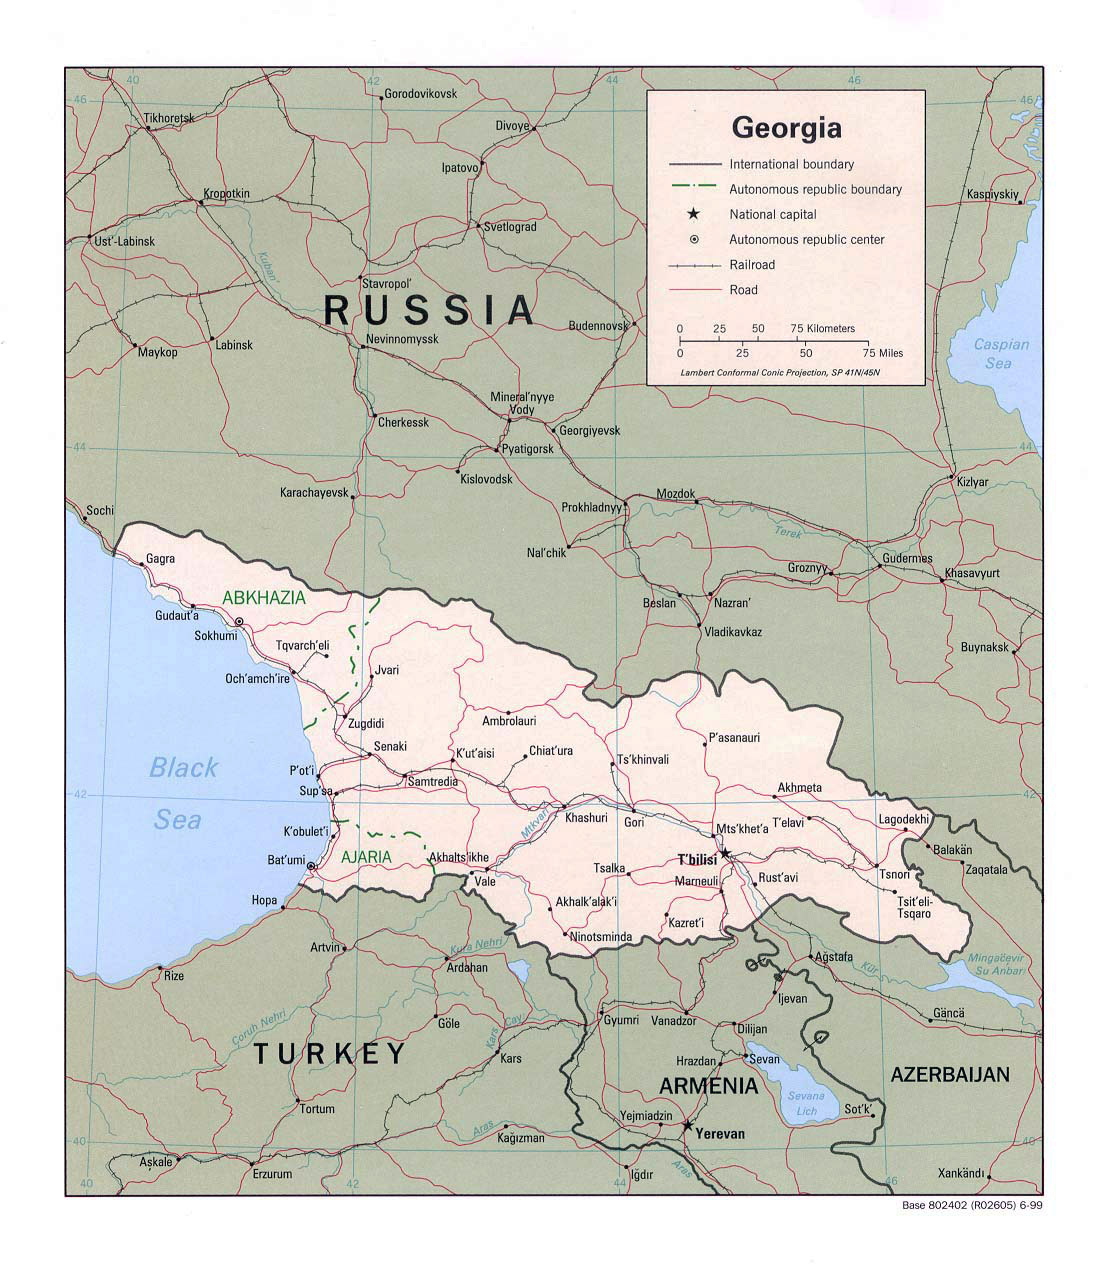 Map Of Georgia With Major Cities.Maps Of Georgia Detailed Map Of Georgia In English Tourist Map